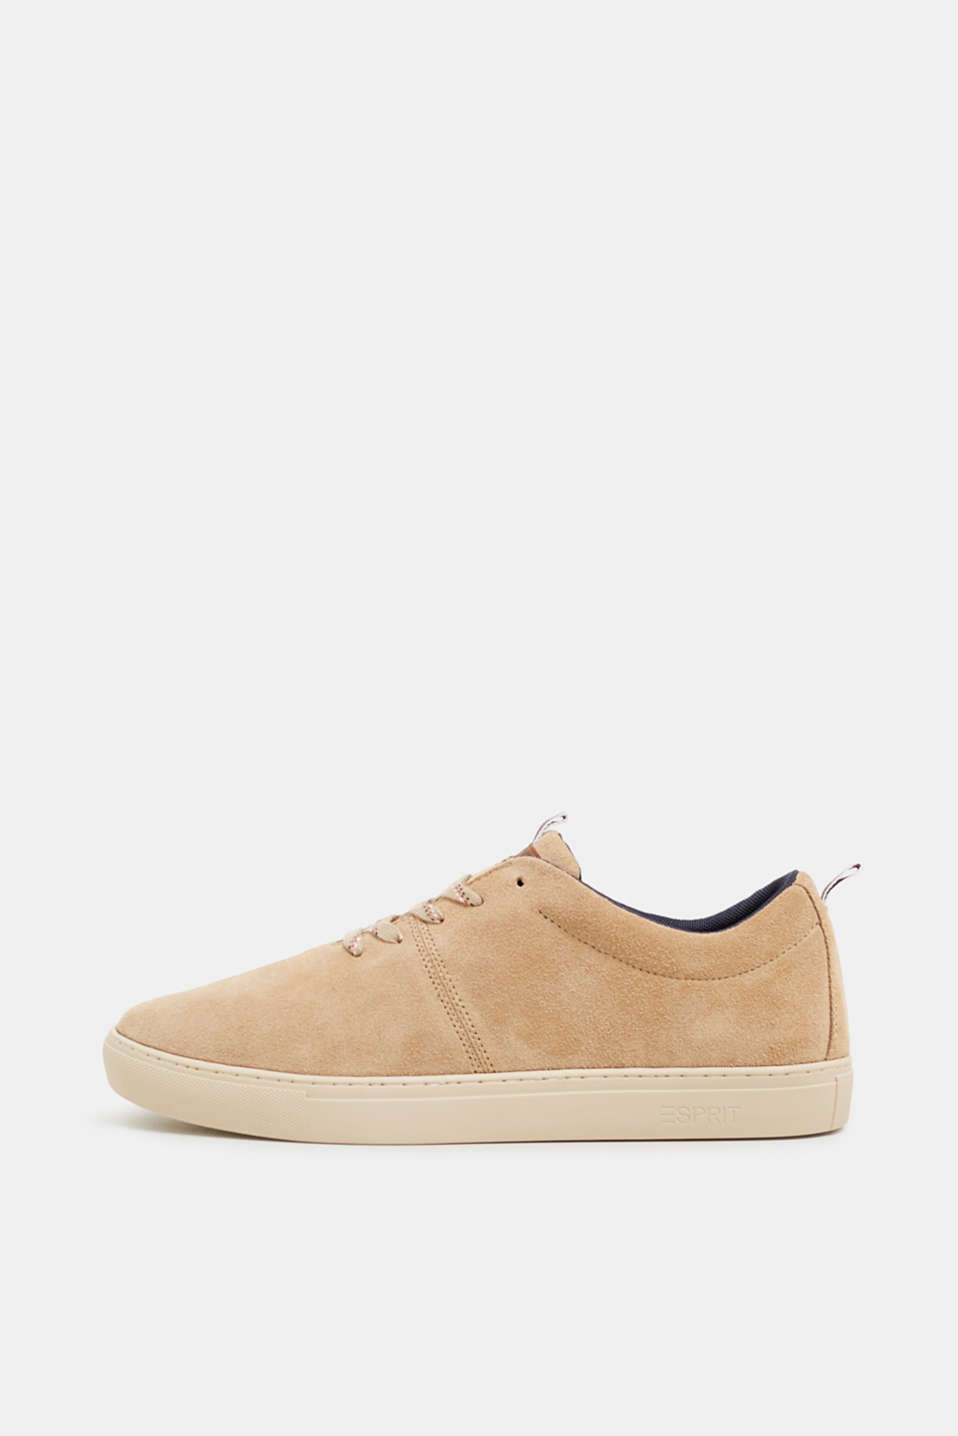 Esprit - Lace-up trainers made of suede